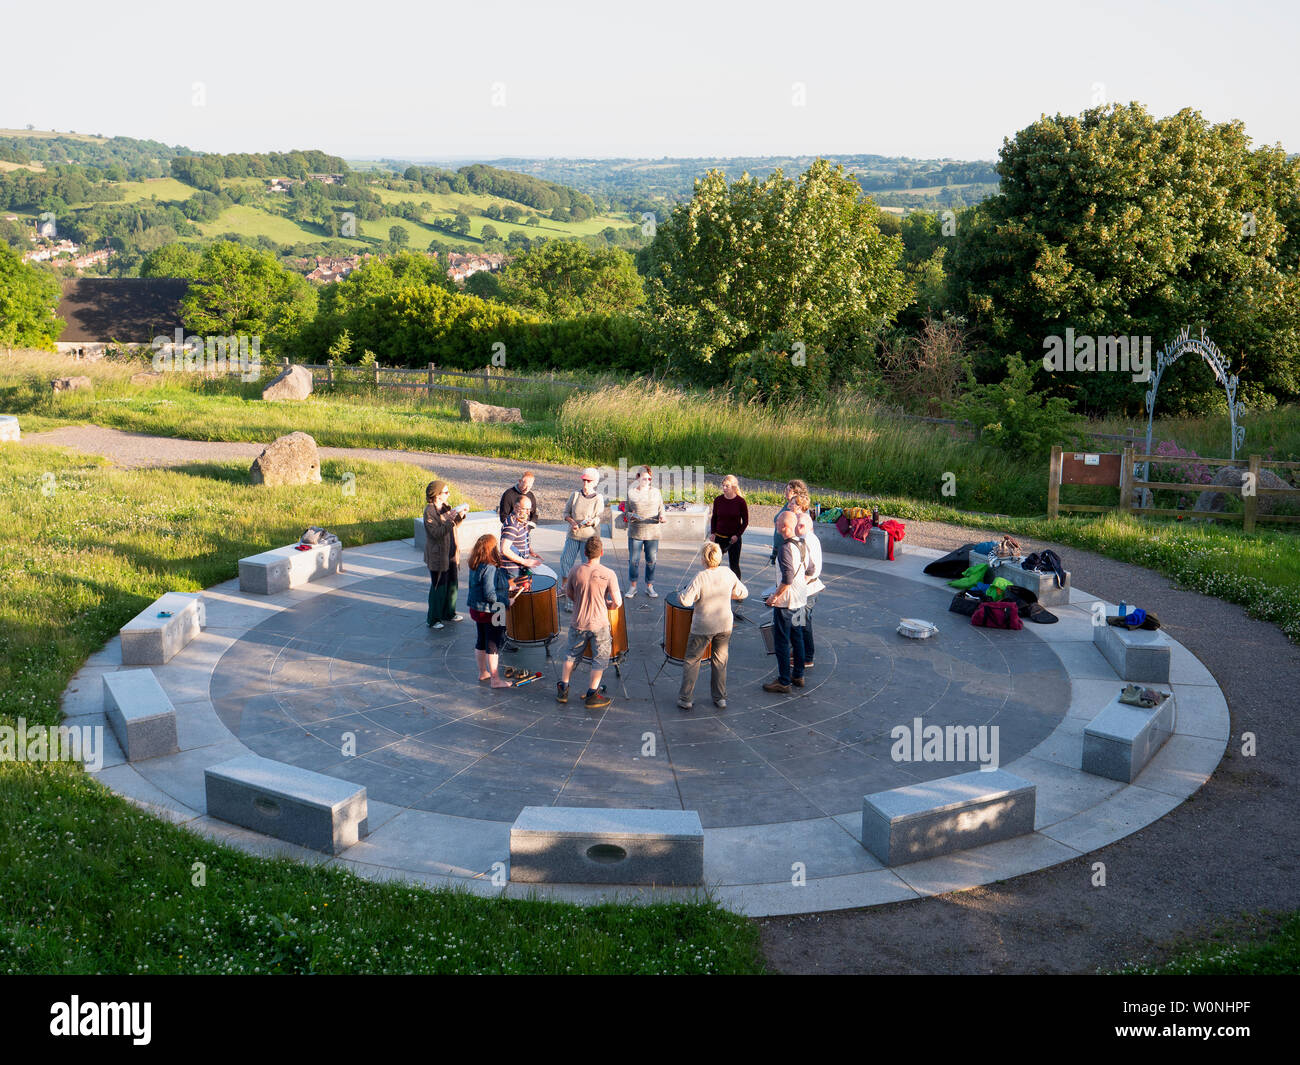 UK Weather news: group of drummers playing and enjoying the end of a sunny warm day at the star disc above Wirksworth in the Derbyshire Dales, Peak District National Park Stock Photo